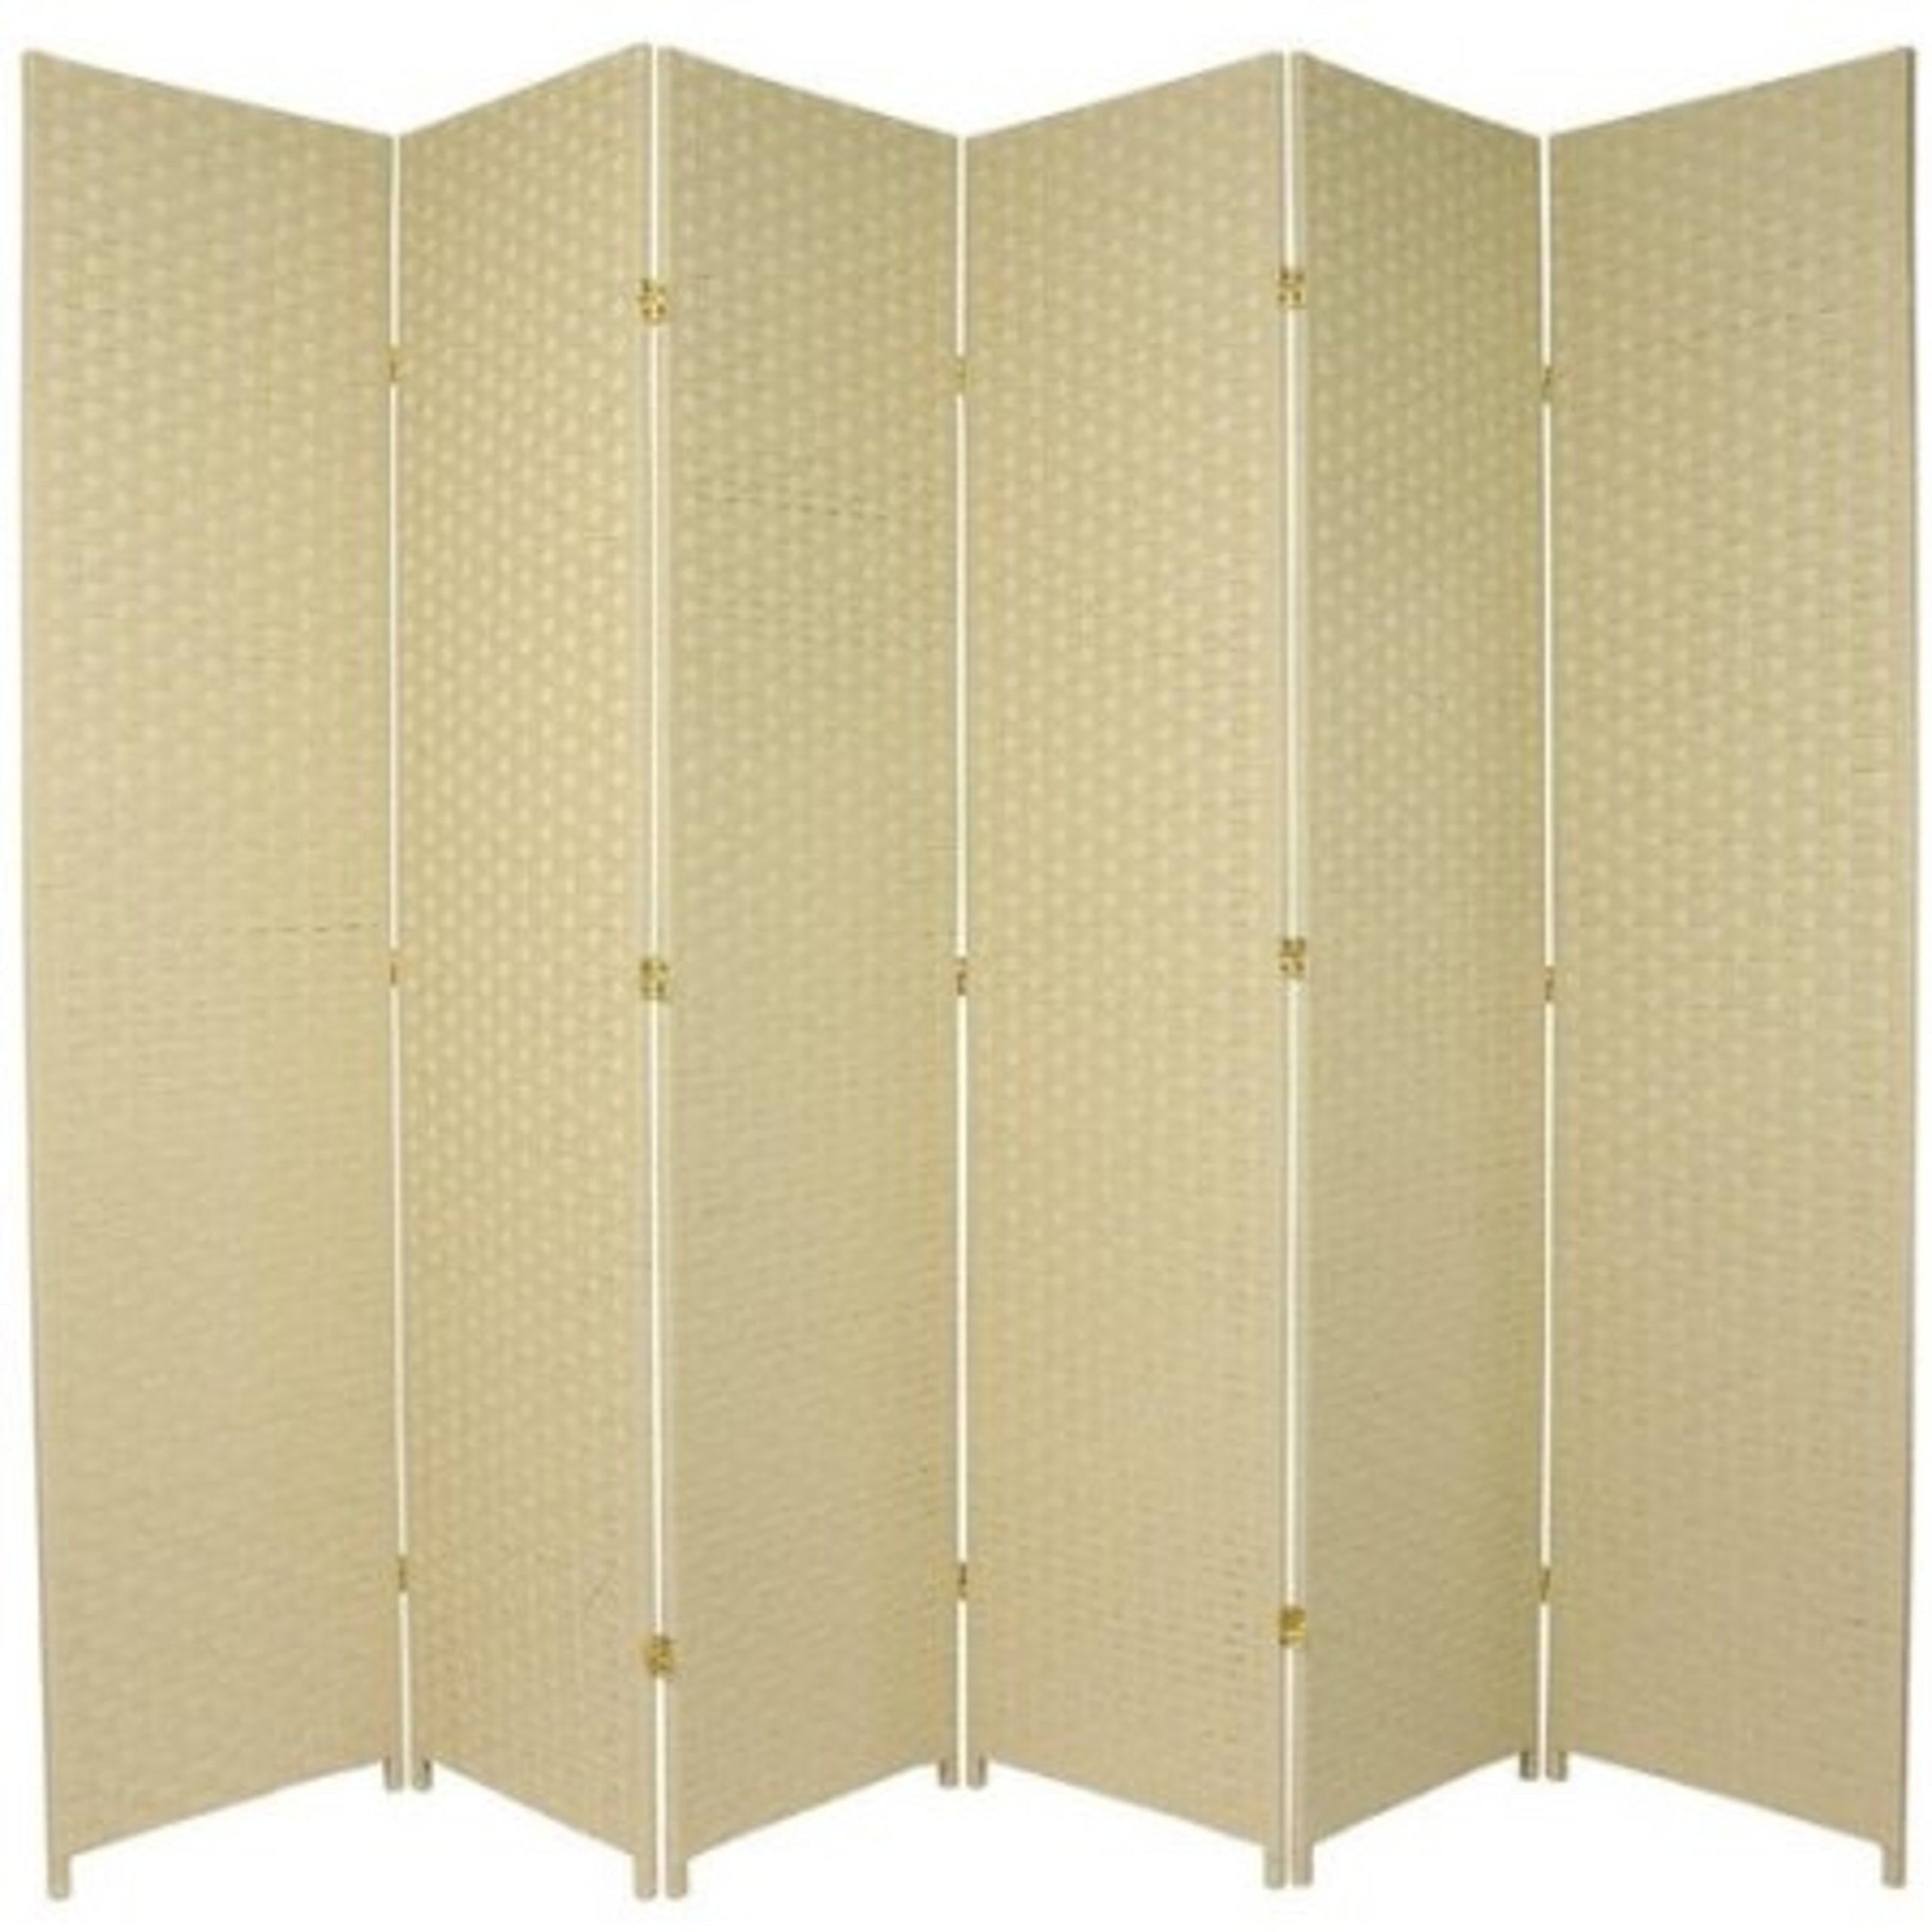 Natural Plant Fiber Woven Room Decor Cream 6 Panels Divider by Roman Shade Unlimited